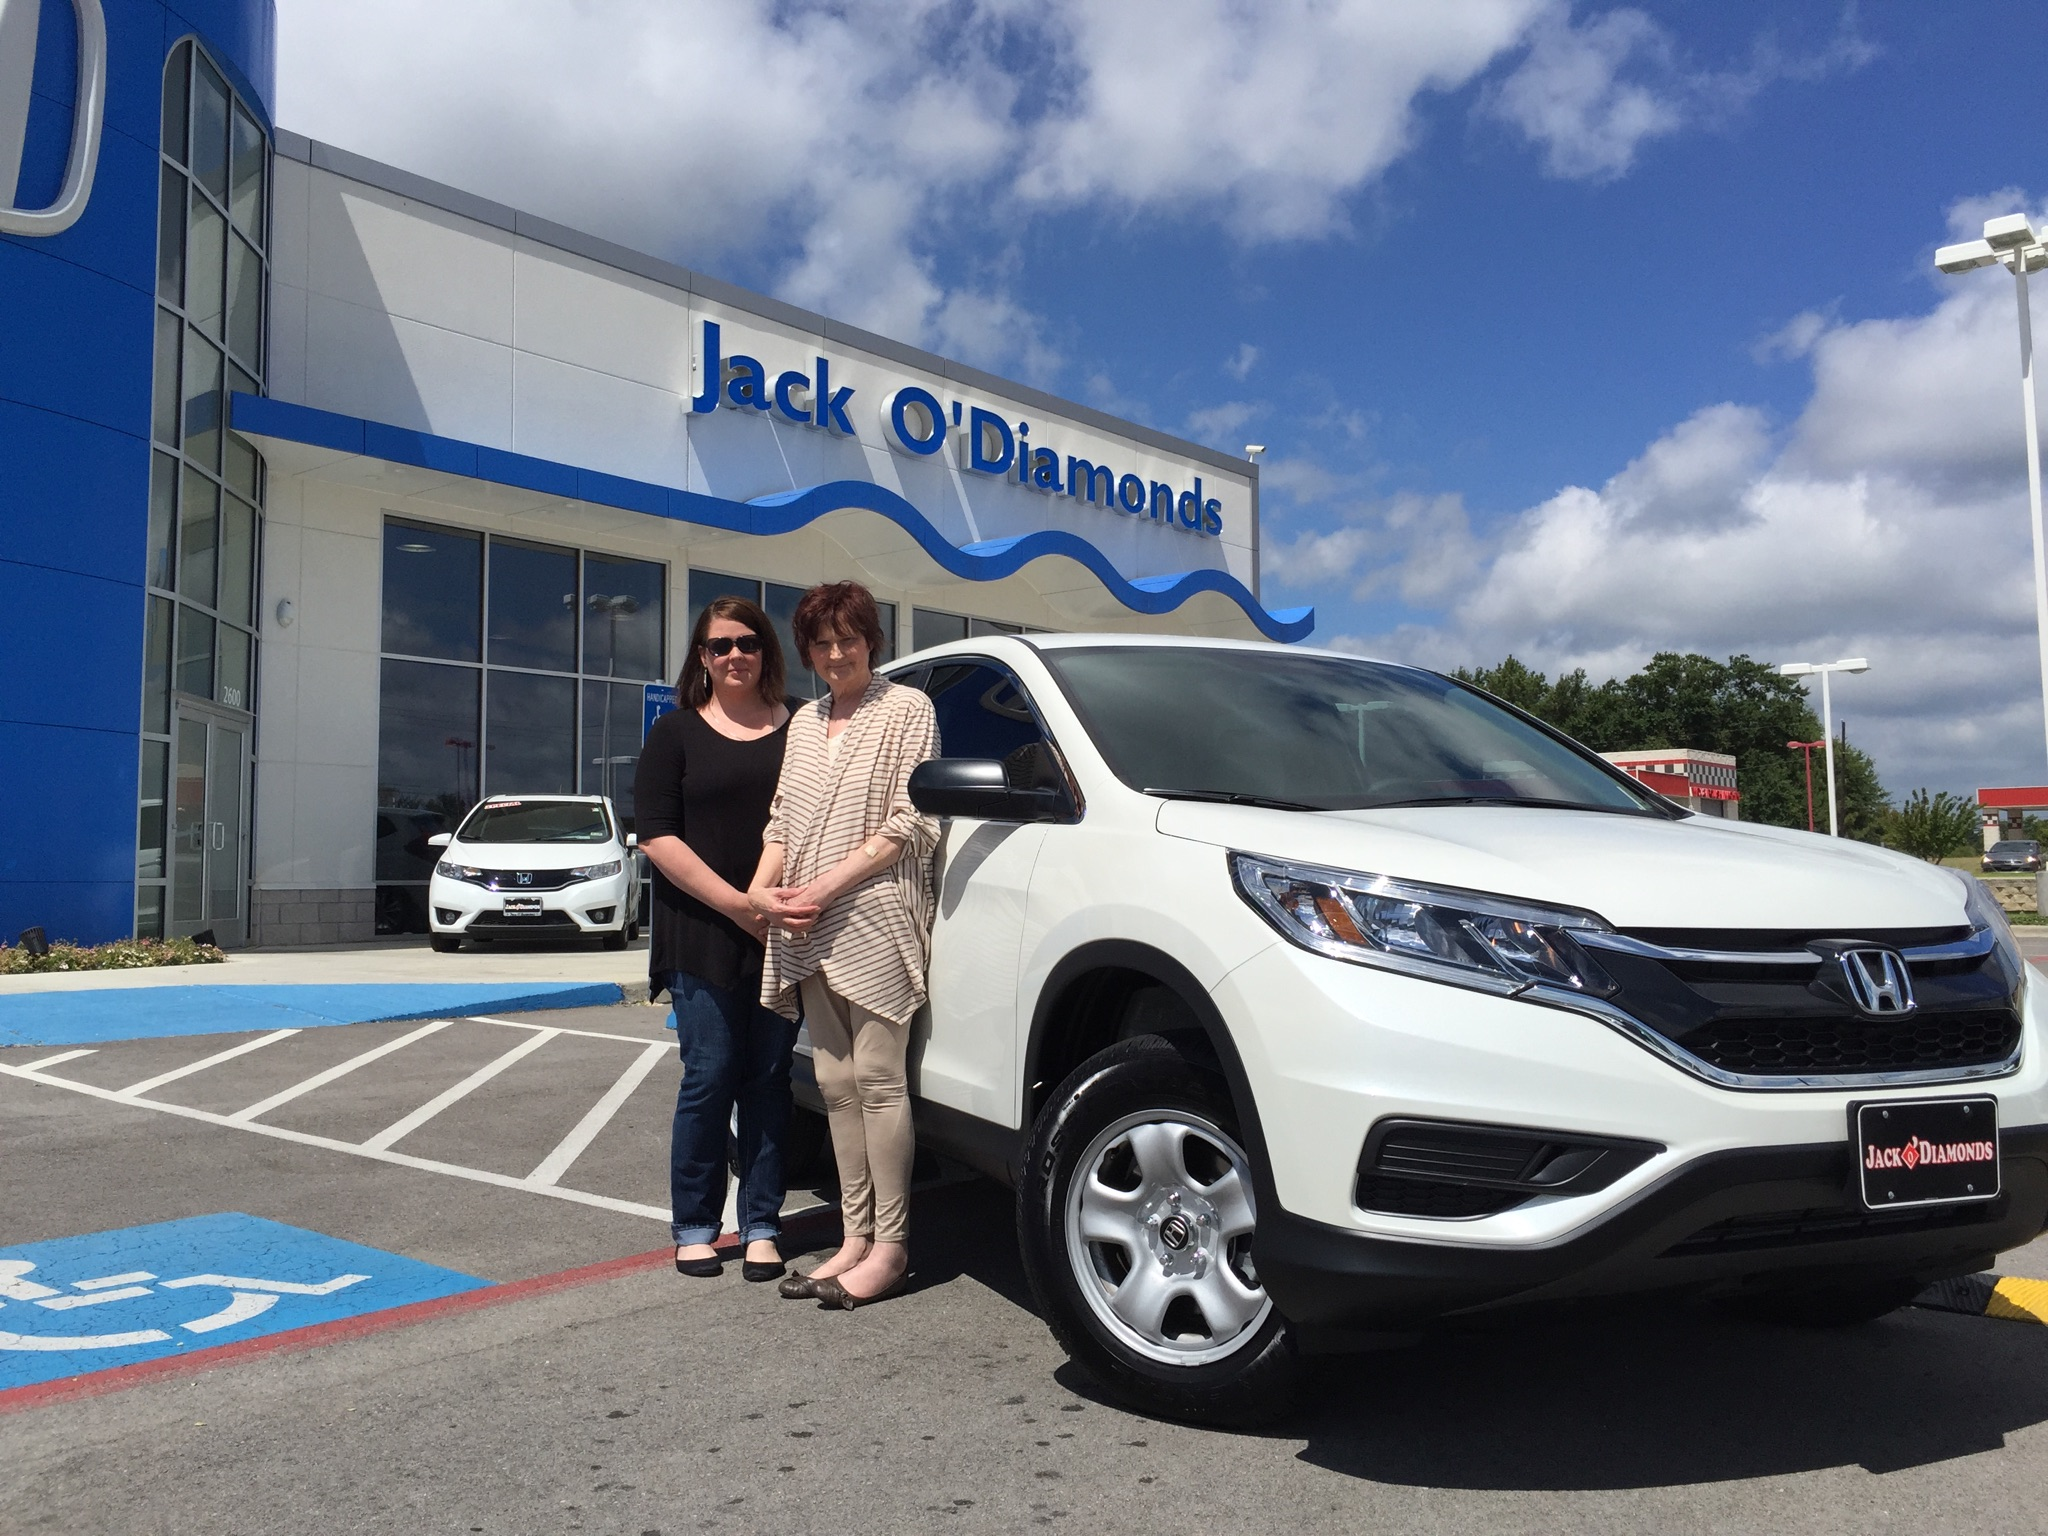 Congratulations to Evelyn Hilton on her new 2015 Honda CRV!